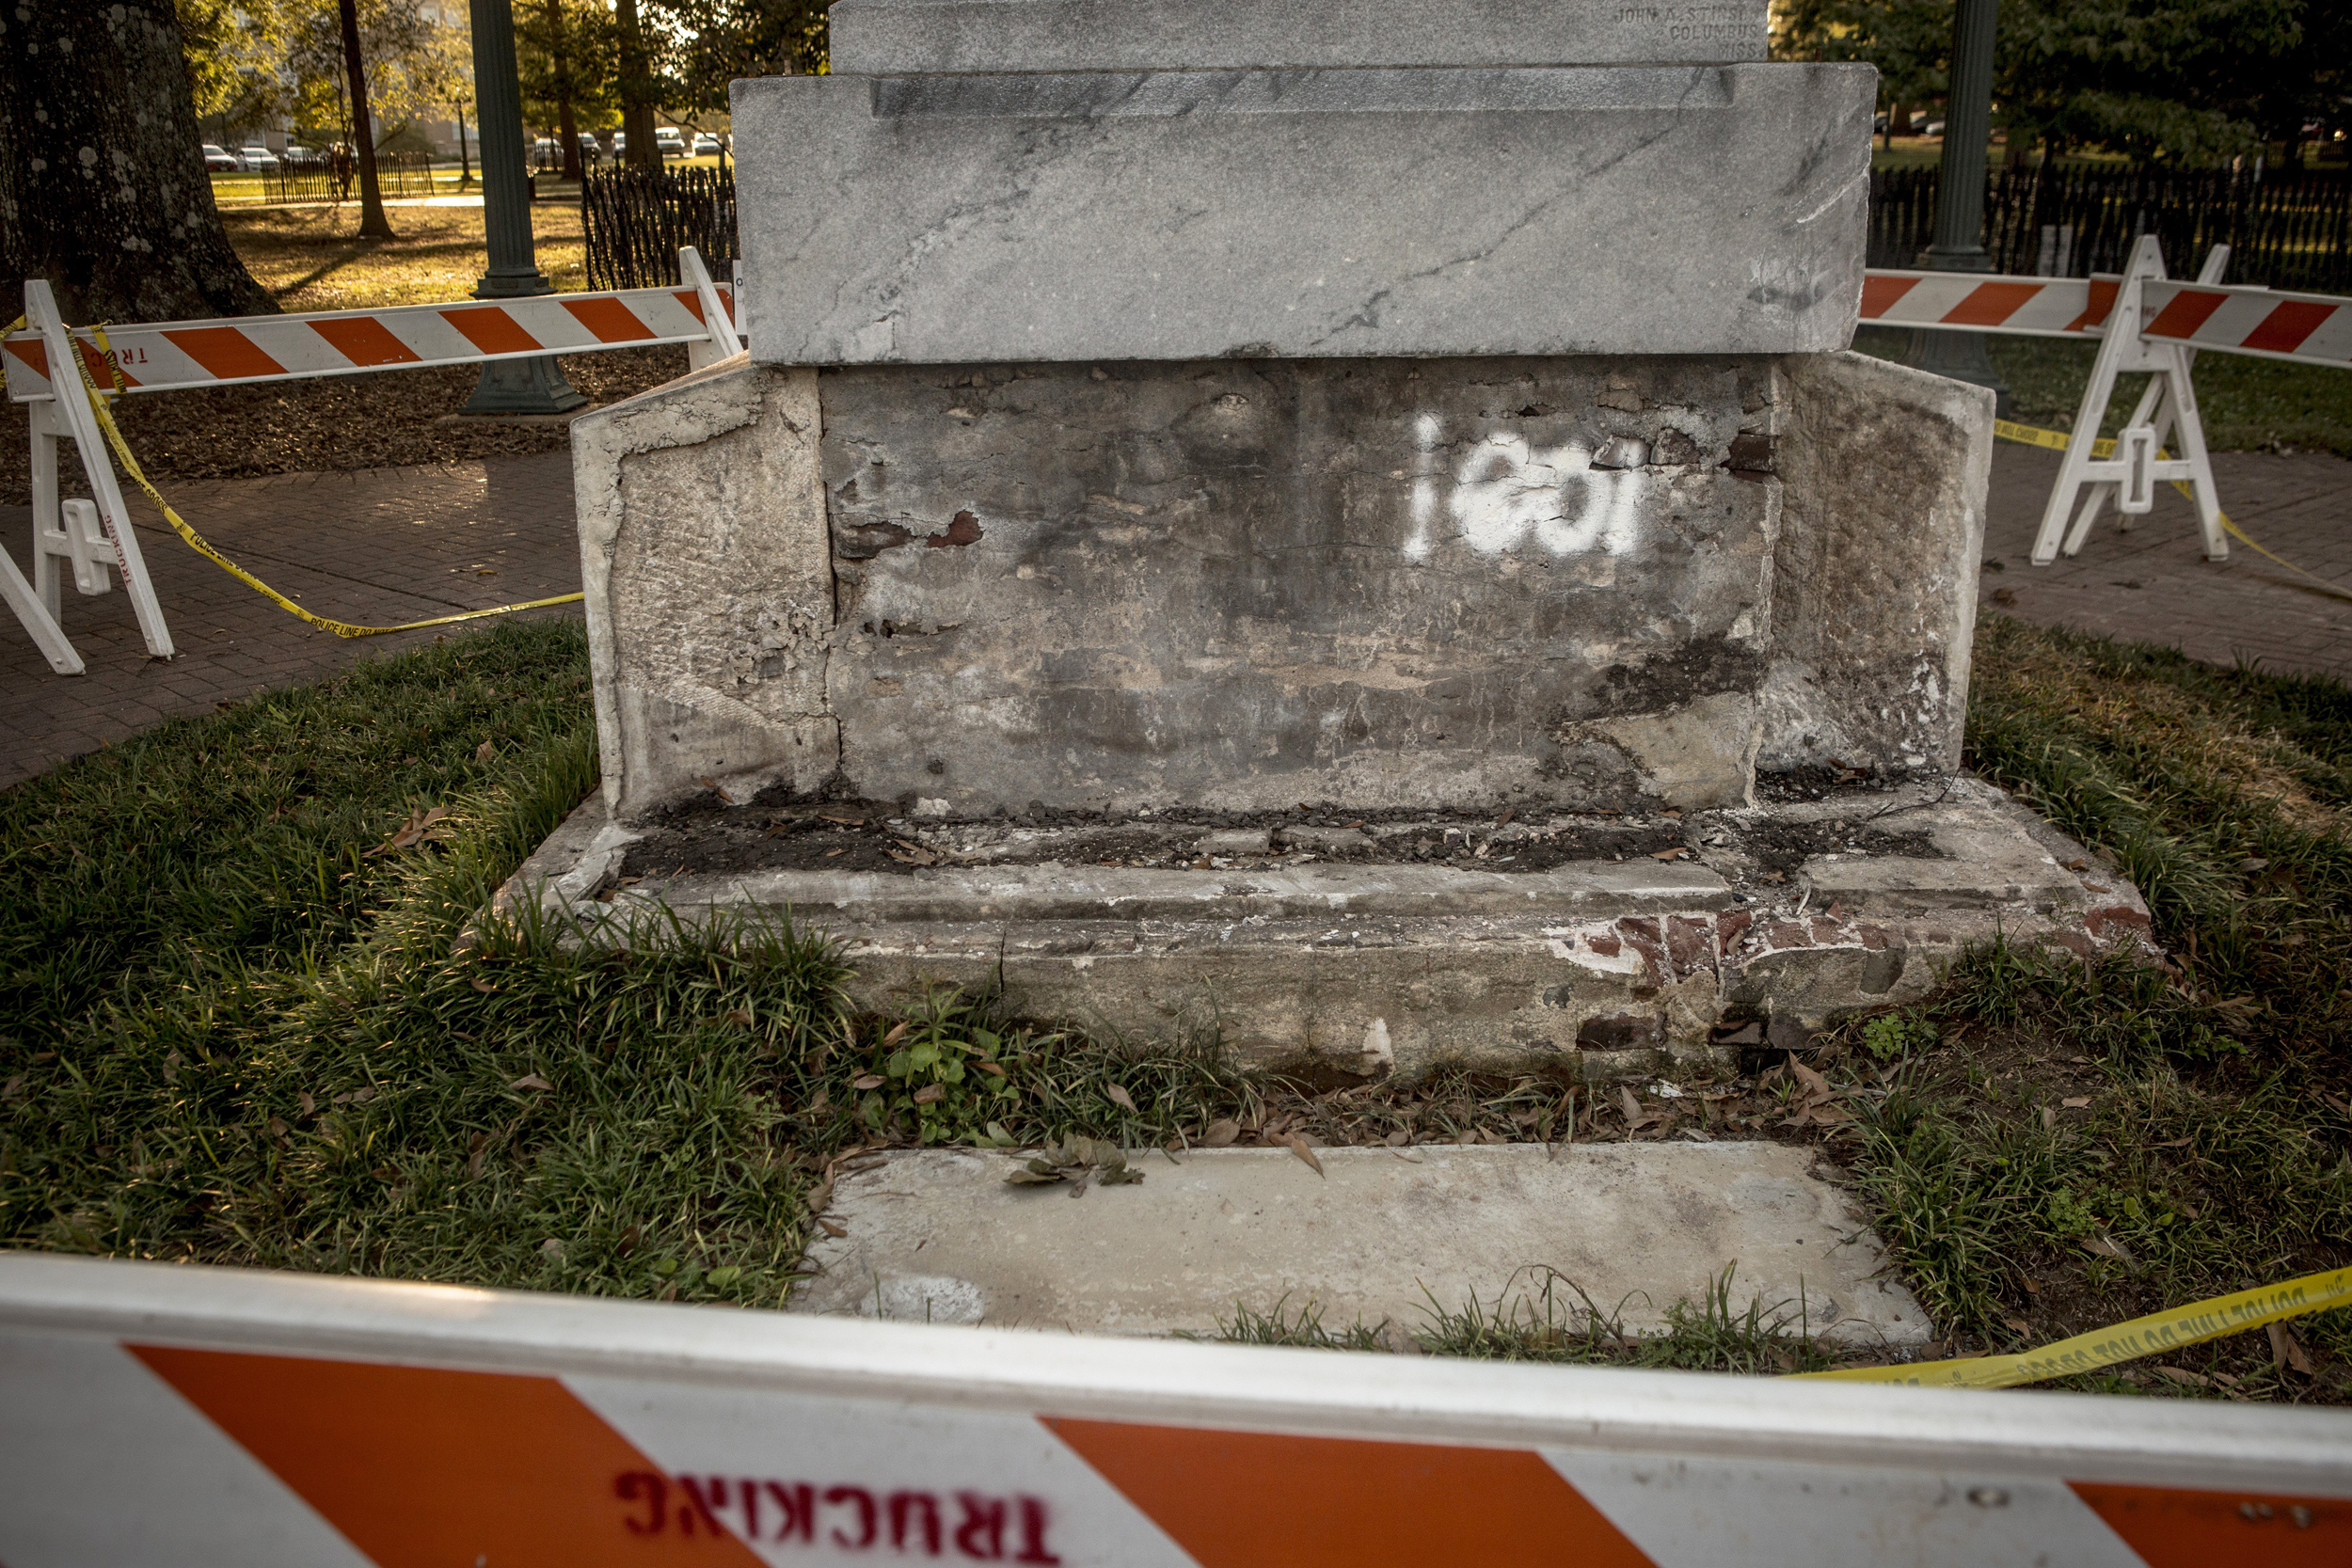 Image: Barricades surround a damaged monument to Confederate soldiers on the University of Mississippi's campus